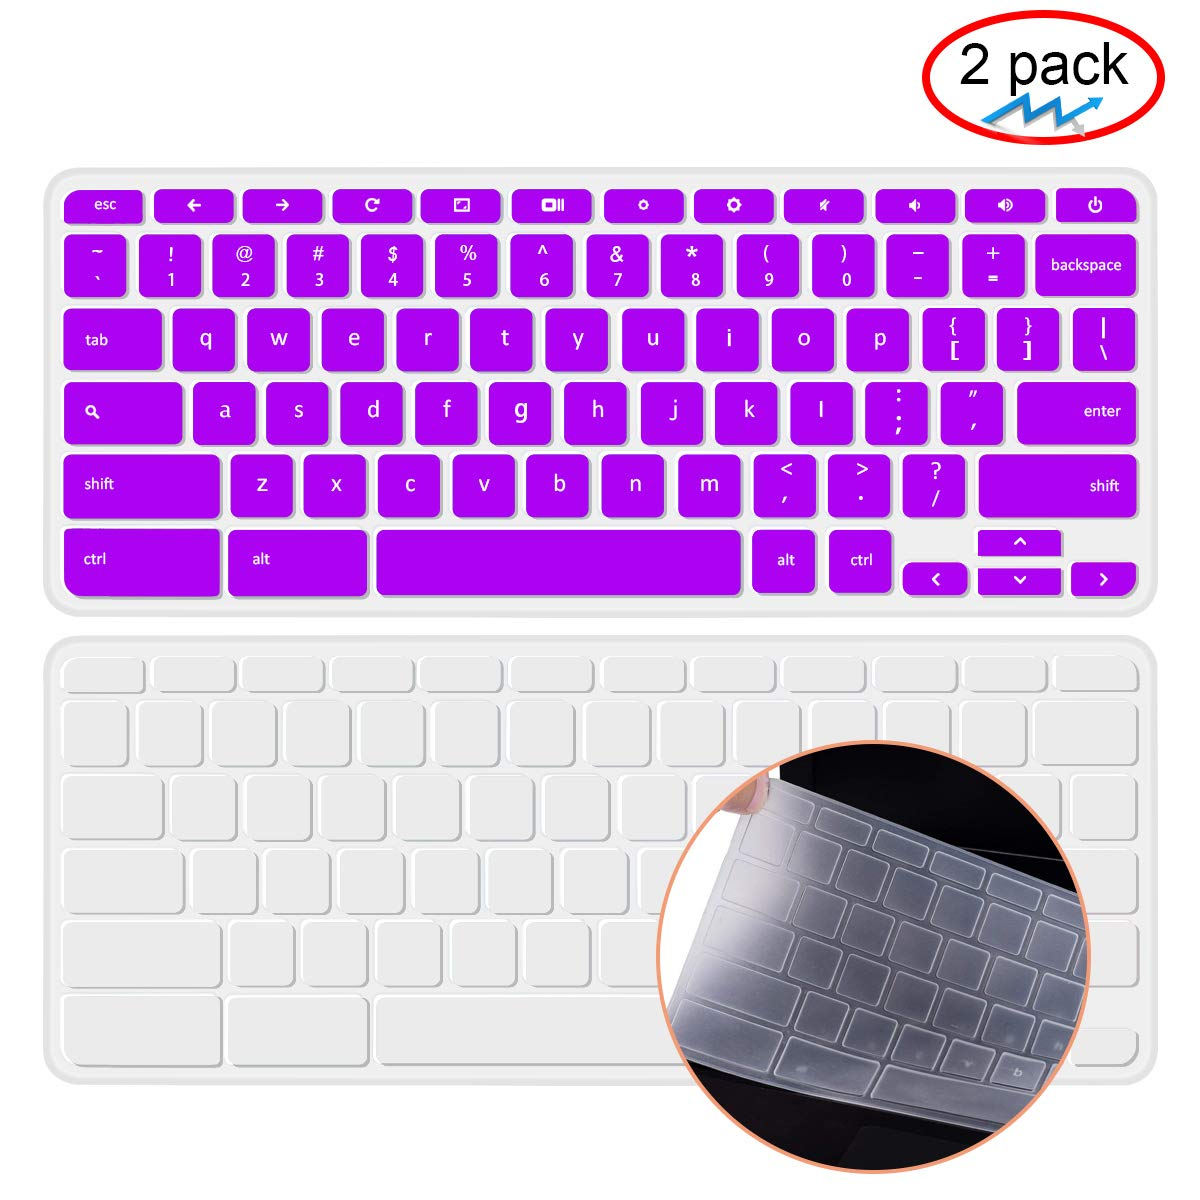 [2 Pack] lapogy Keyboard Cover Skin Compatible Acer chromebook R11 CB3-131 CB3-132,CB5-132T,CB3-131,Chromebook R 13 Keyboard Cover, CB5-312T,Chromebook 15,CB3-531 CB3-532 CB5-571 C910,Rainbow